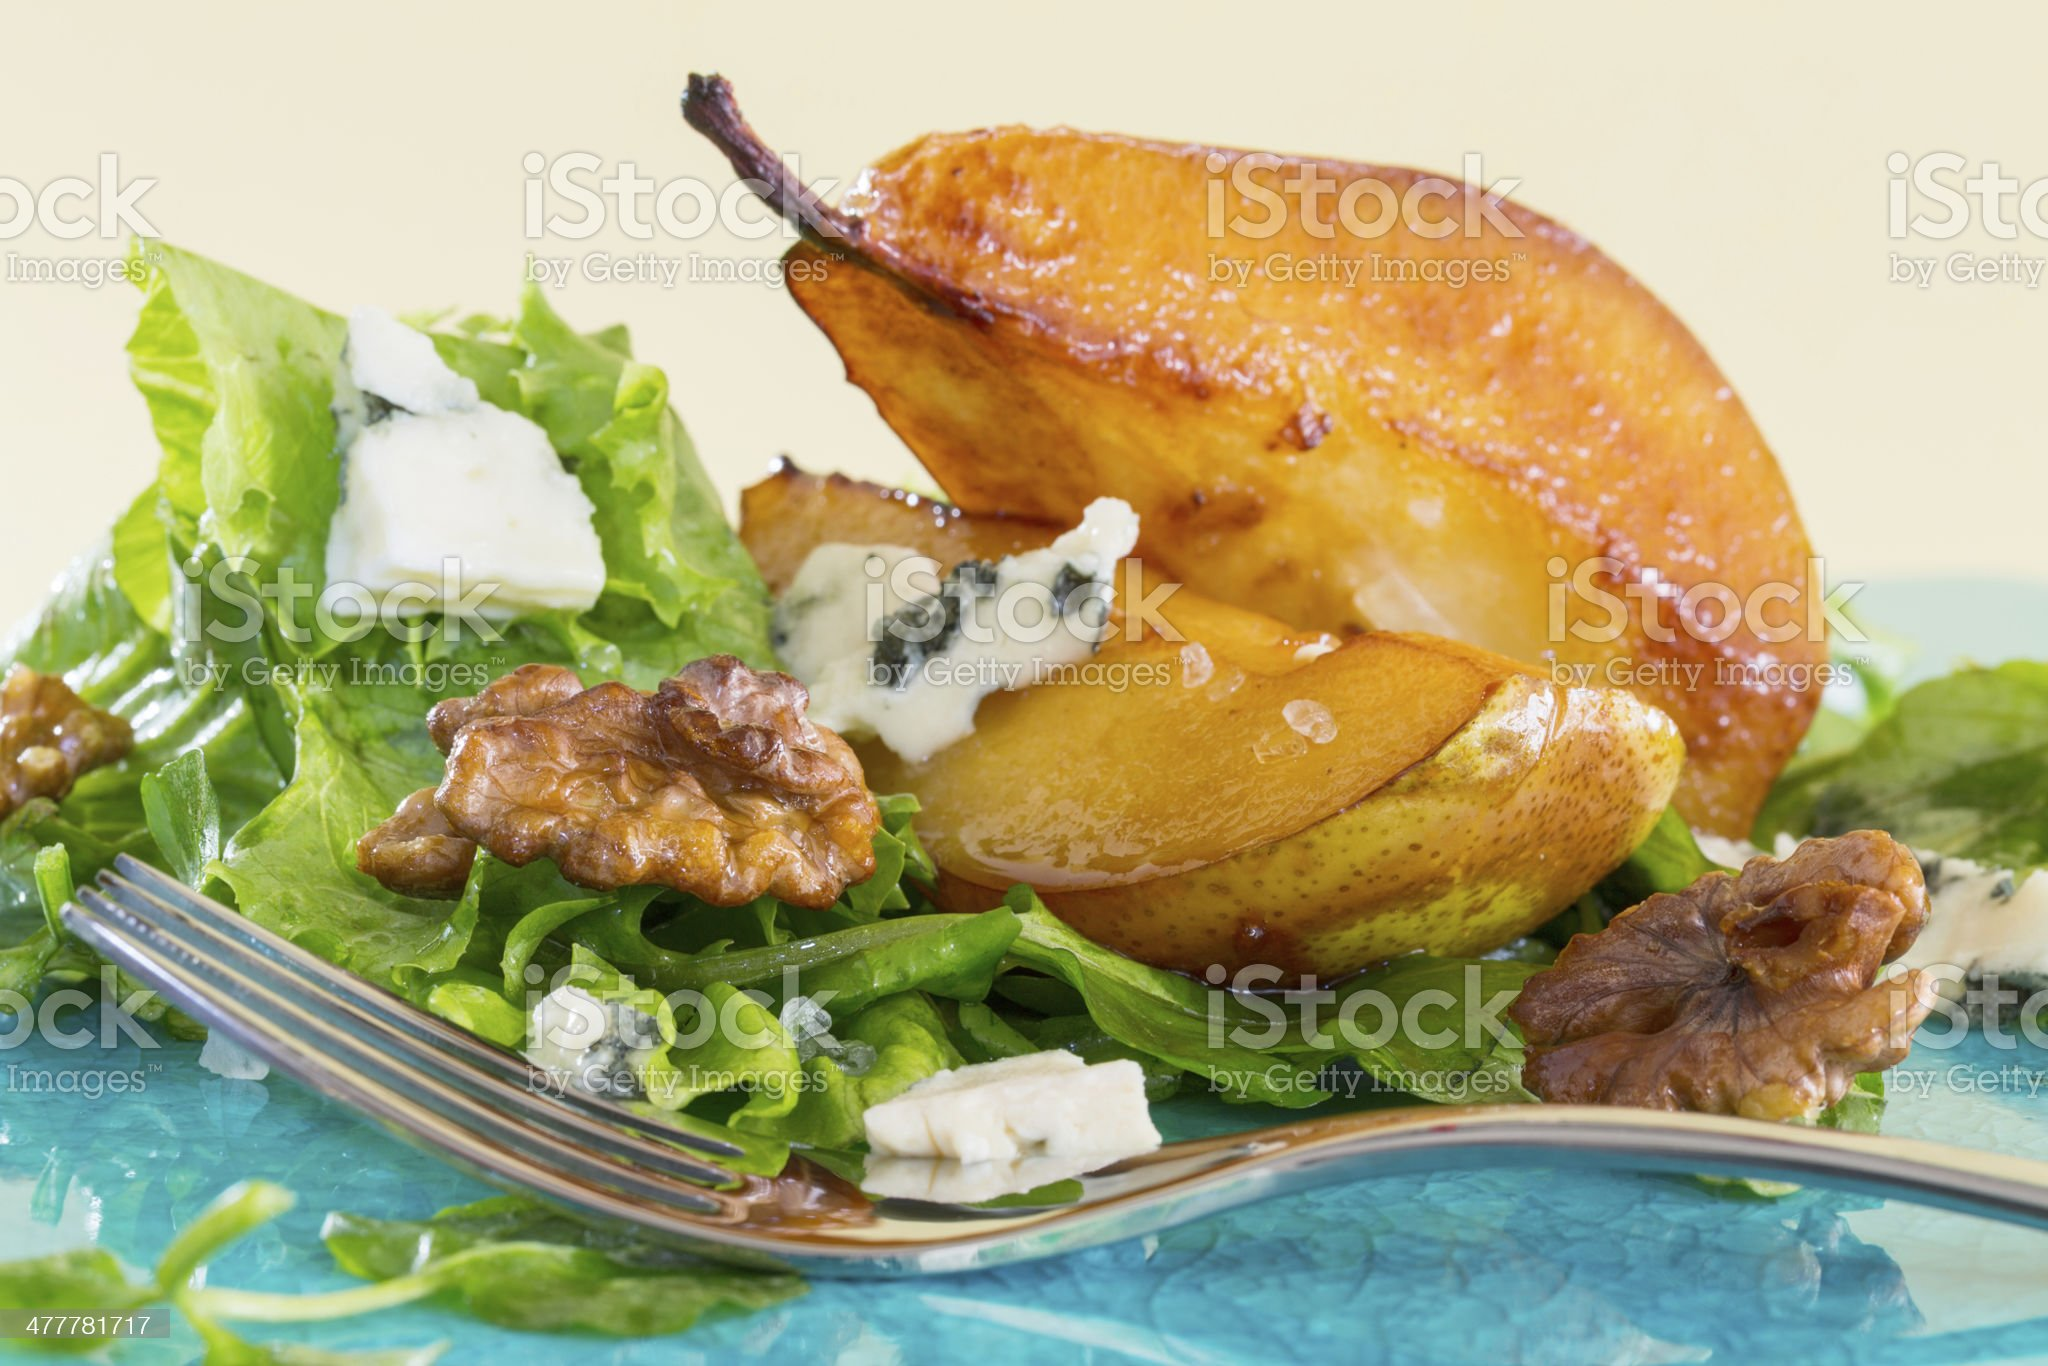 Salad with caramelised pears,walnuts and cheese, on blue plate royalty-free stock photo